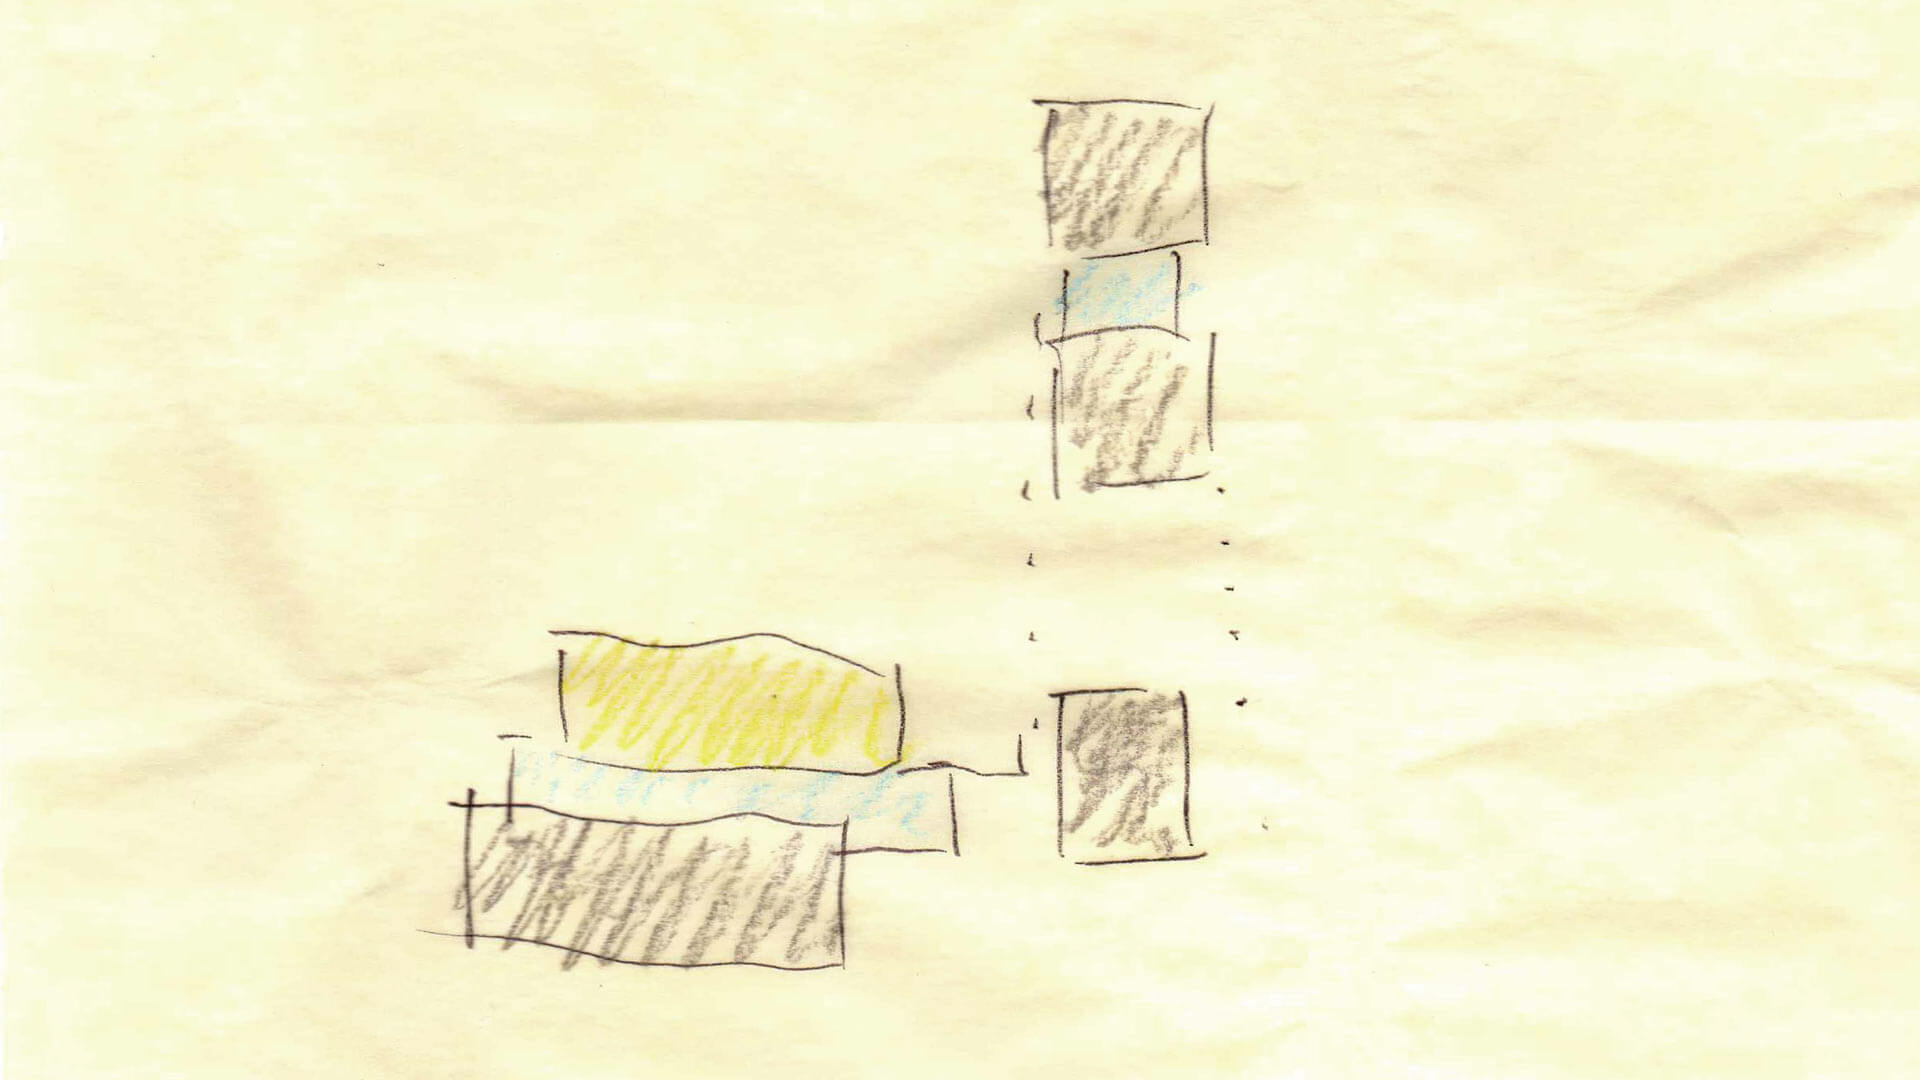 Parti Diagram - organization + material concept - central entry + circulation hall - Back40House - Markleville, IN - HAUS | Architecture For Modern Lifestyles